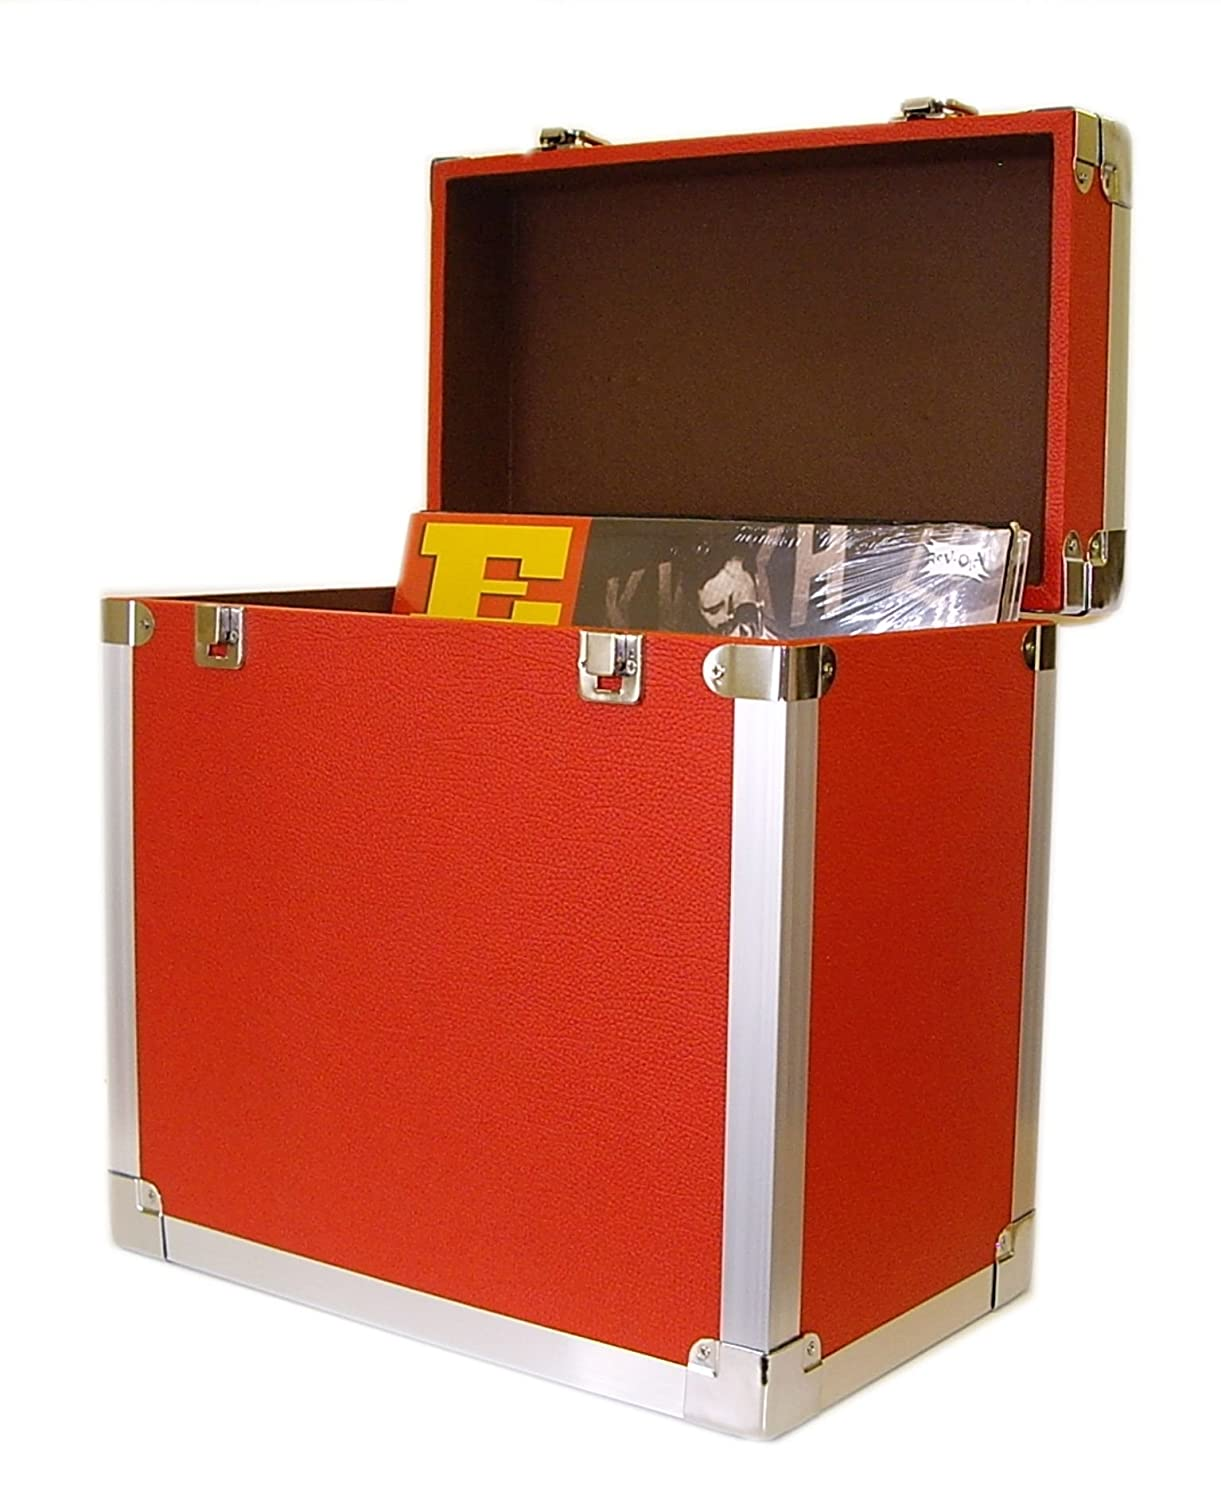 Steepletone SRB 12 Inch LP Storage Case   Red: Amazon.co.uk: Audio U0026 HiFi